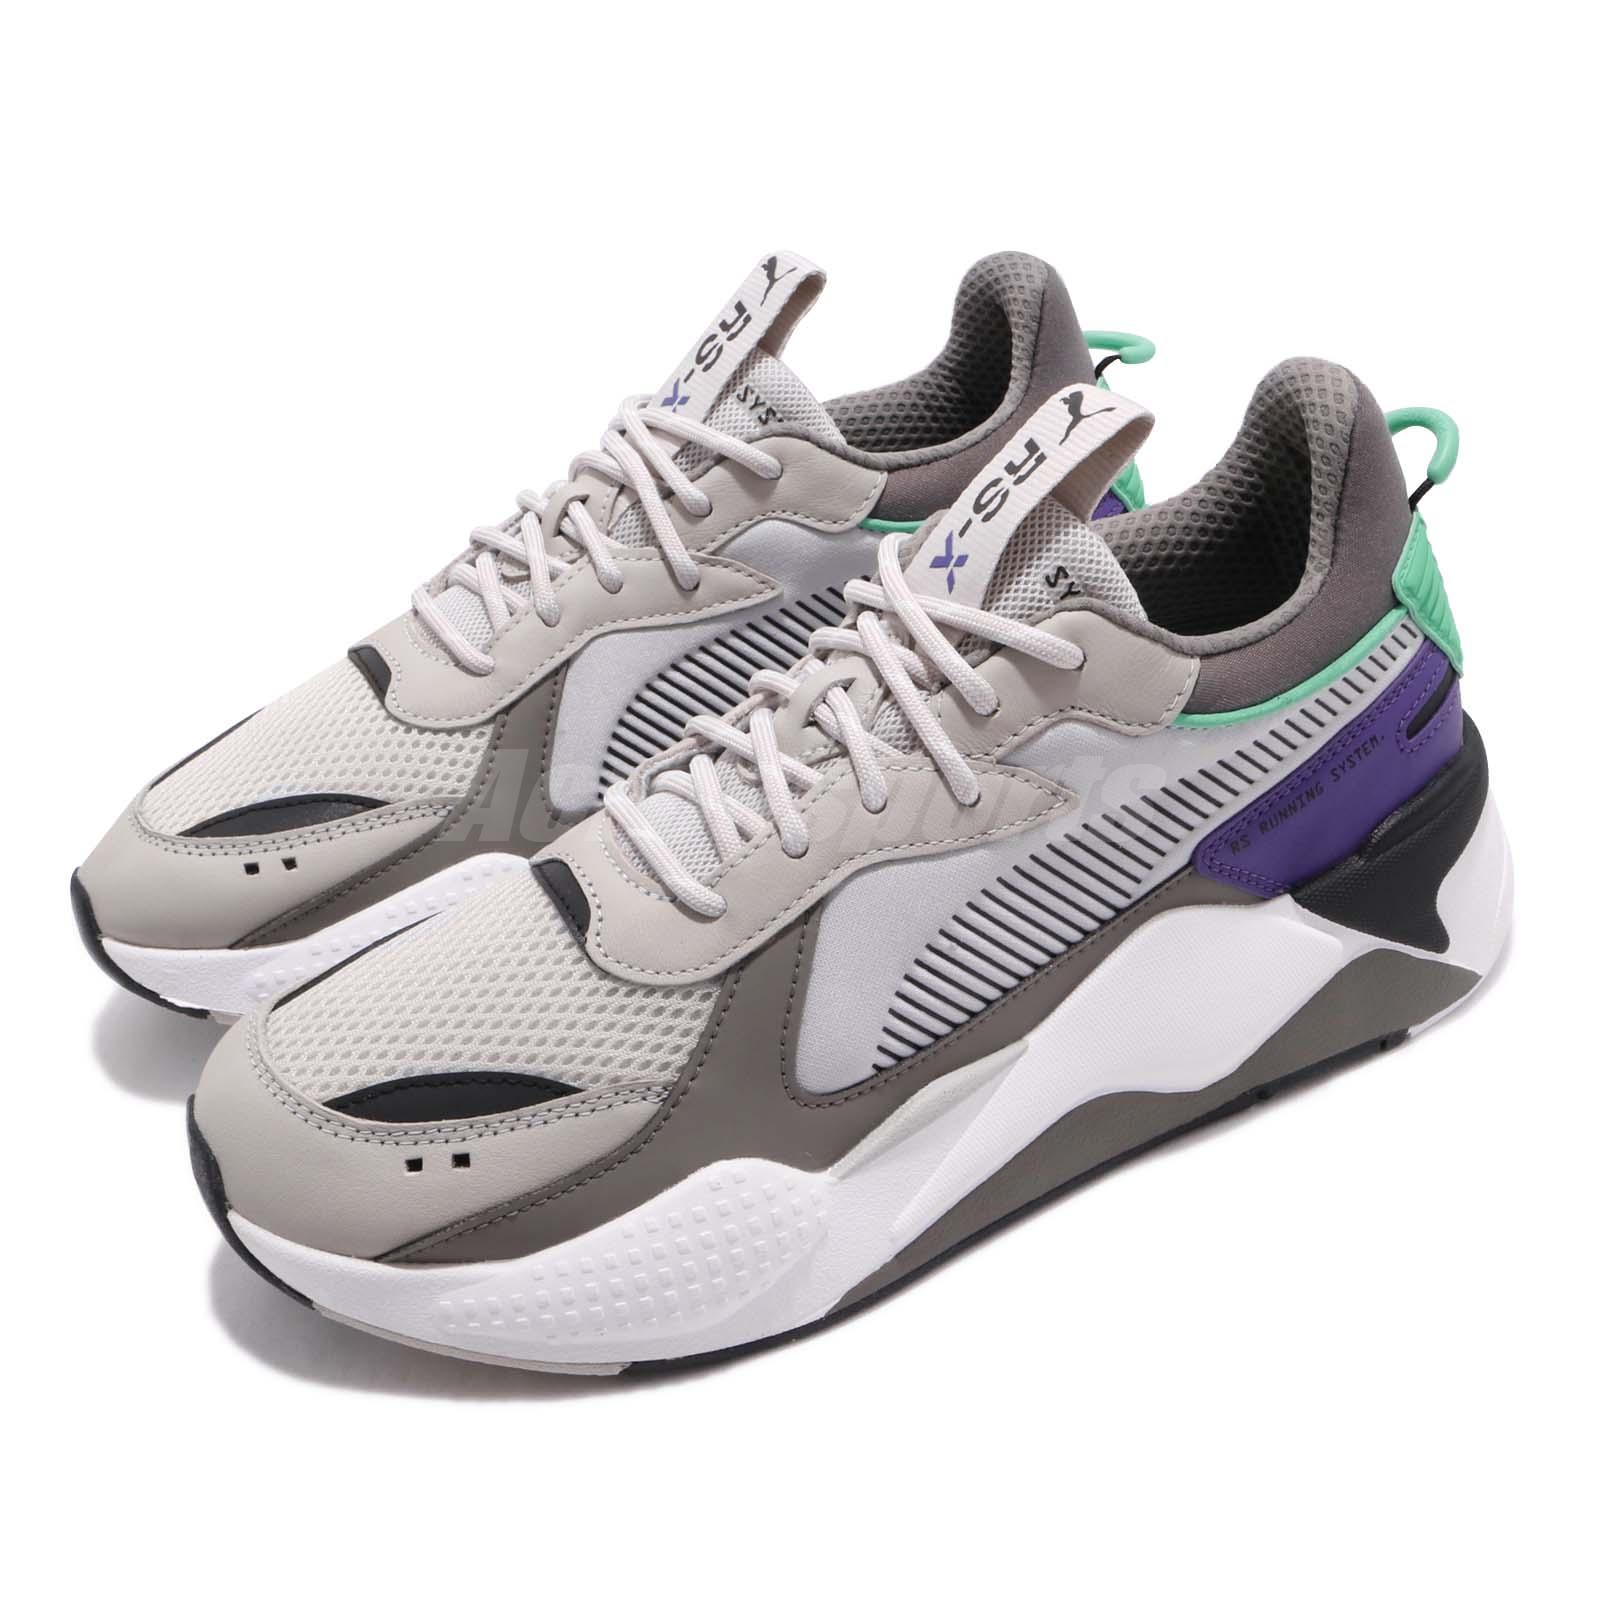 grey and green puma shoes